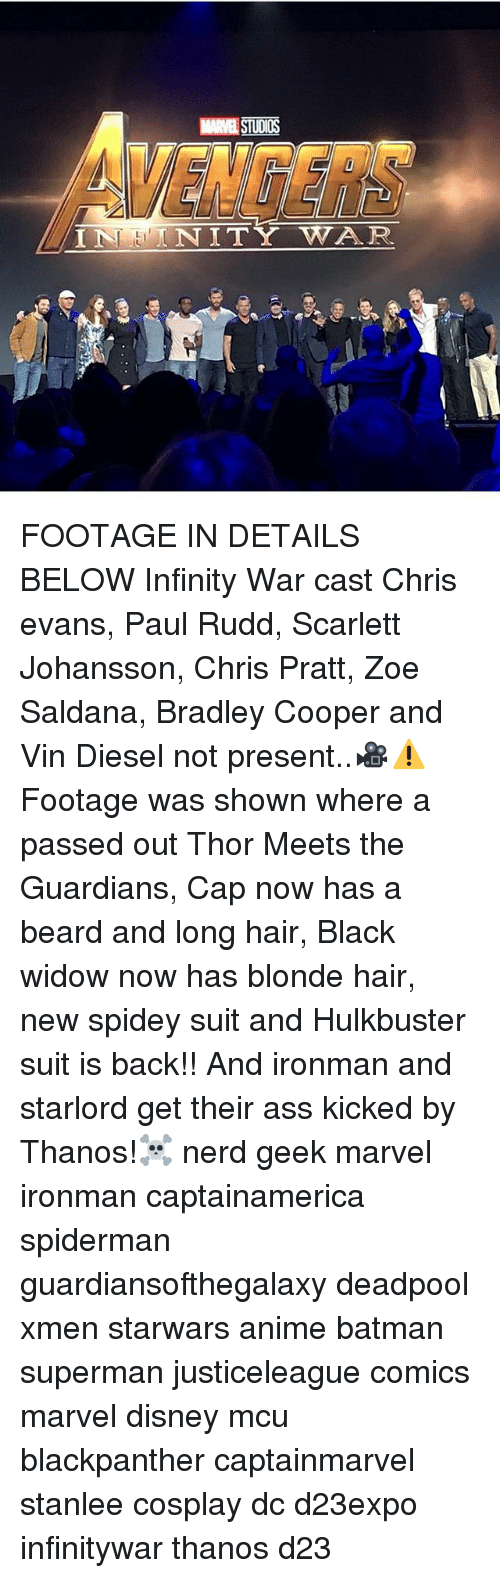 Anime, Ass, and Batman: MARVEL STUDIOS  VENGERS  NITY WAR FOOTAGE IN DETAILS BELOW Infinity War cast Chris evans, Paul Rudd, Scarlett Johansson, Chris Pratt, Zoe Saldana, Bradley Cooper and Vin Diesel not present..🎥⚠Footage was shown where a passed out Thor Meets the Guardians, Cap now has a beard and long hair, Black widow now has blonde hair, new spidey suit and Hulkbuster suit is back!! And ironman and starlord get their ass kicked by Thanos!☠ nerd geek marvel ironman captainamerica spiderman guardiansofthegalaxy deadpool xmen starwars anime batman superman justiceleague comics marvel disney mcu blackpanther captainmarvel stanlee cosplay dc d23expo infinitywar thanos d23